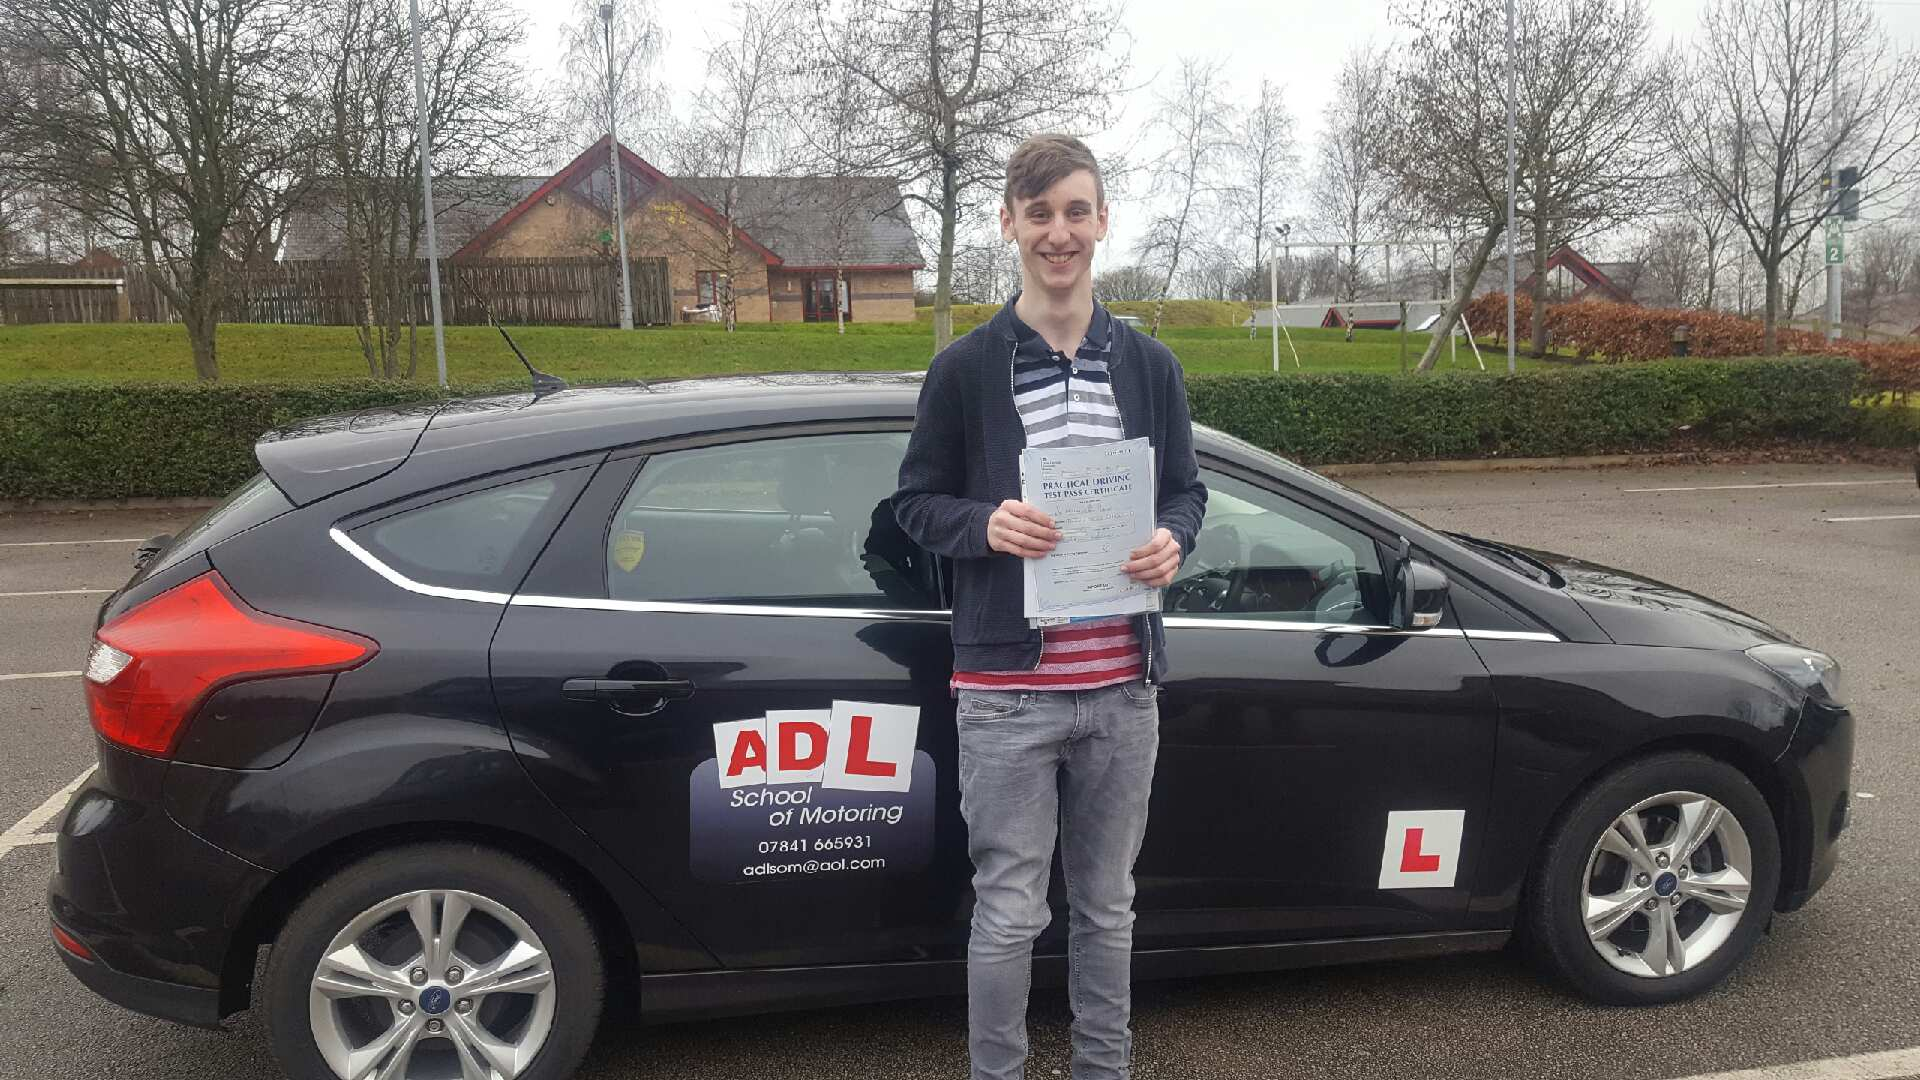 2017..continued success for ADL school of motoring.